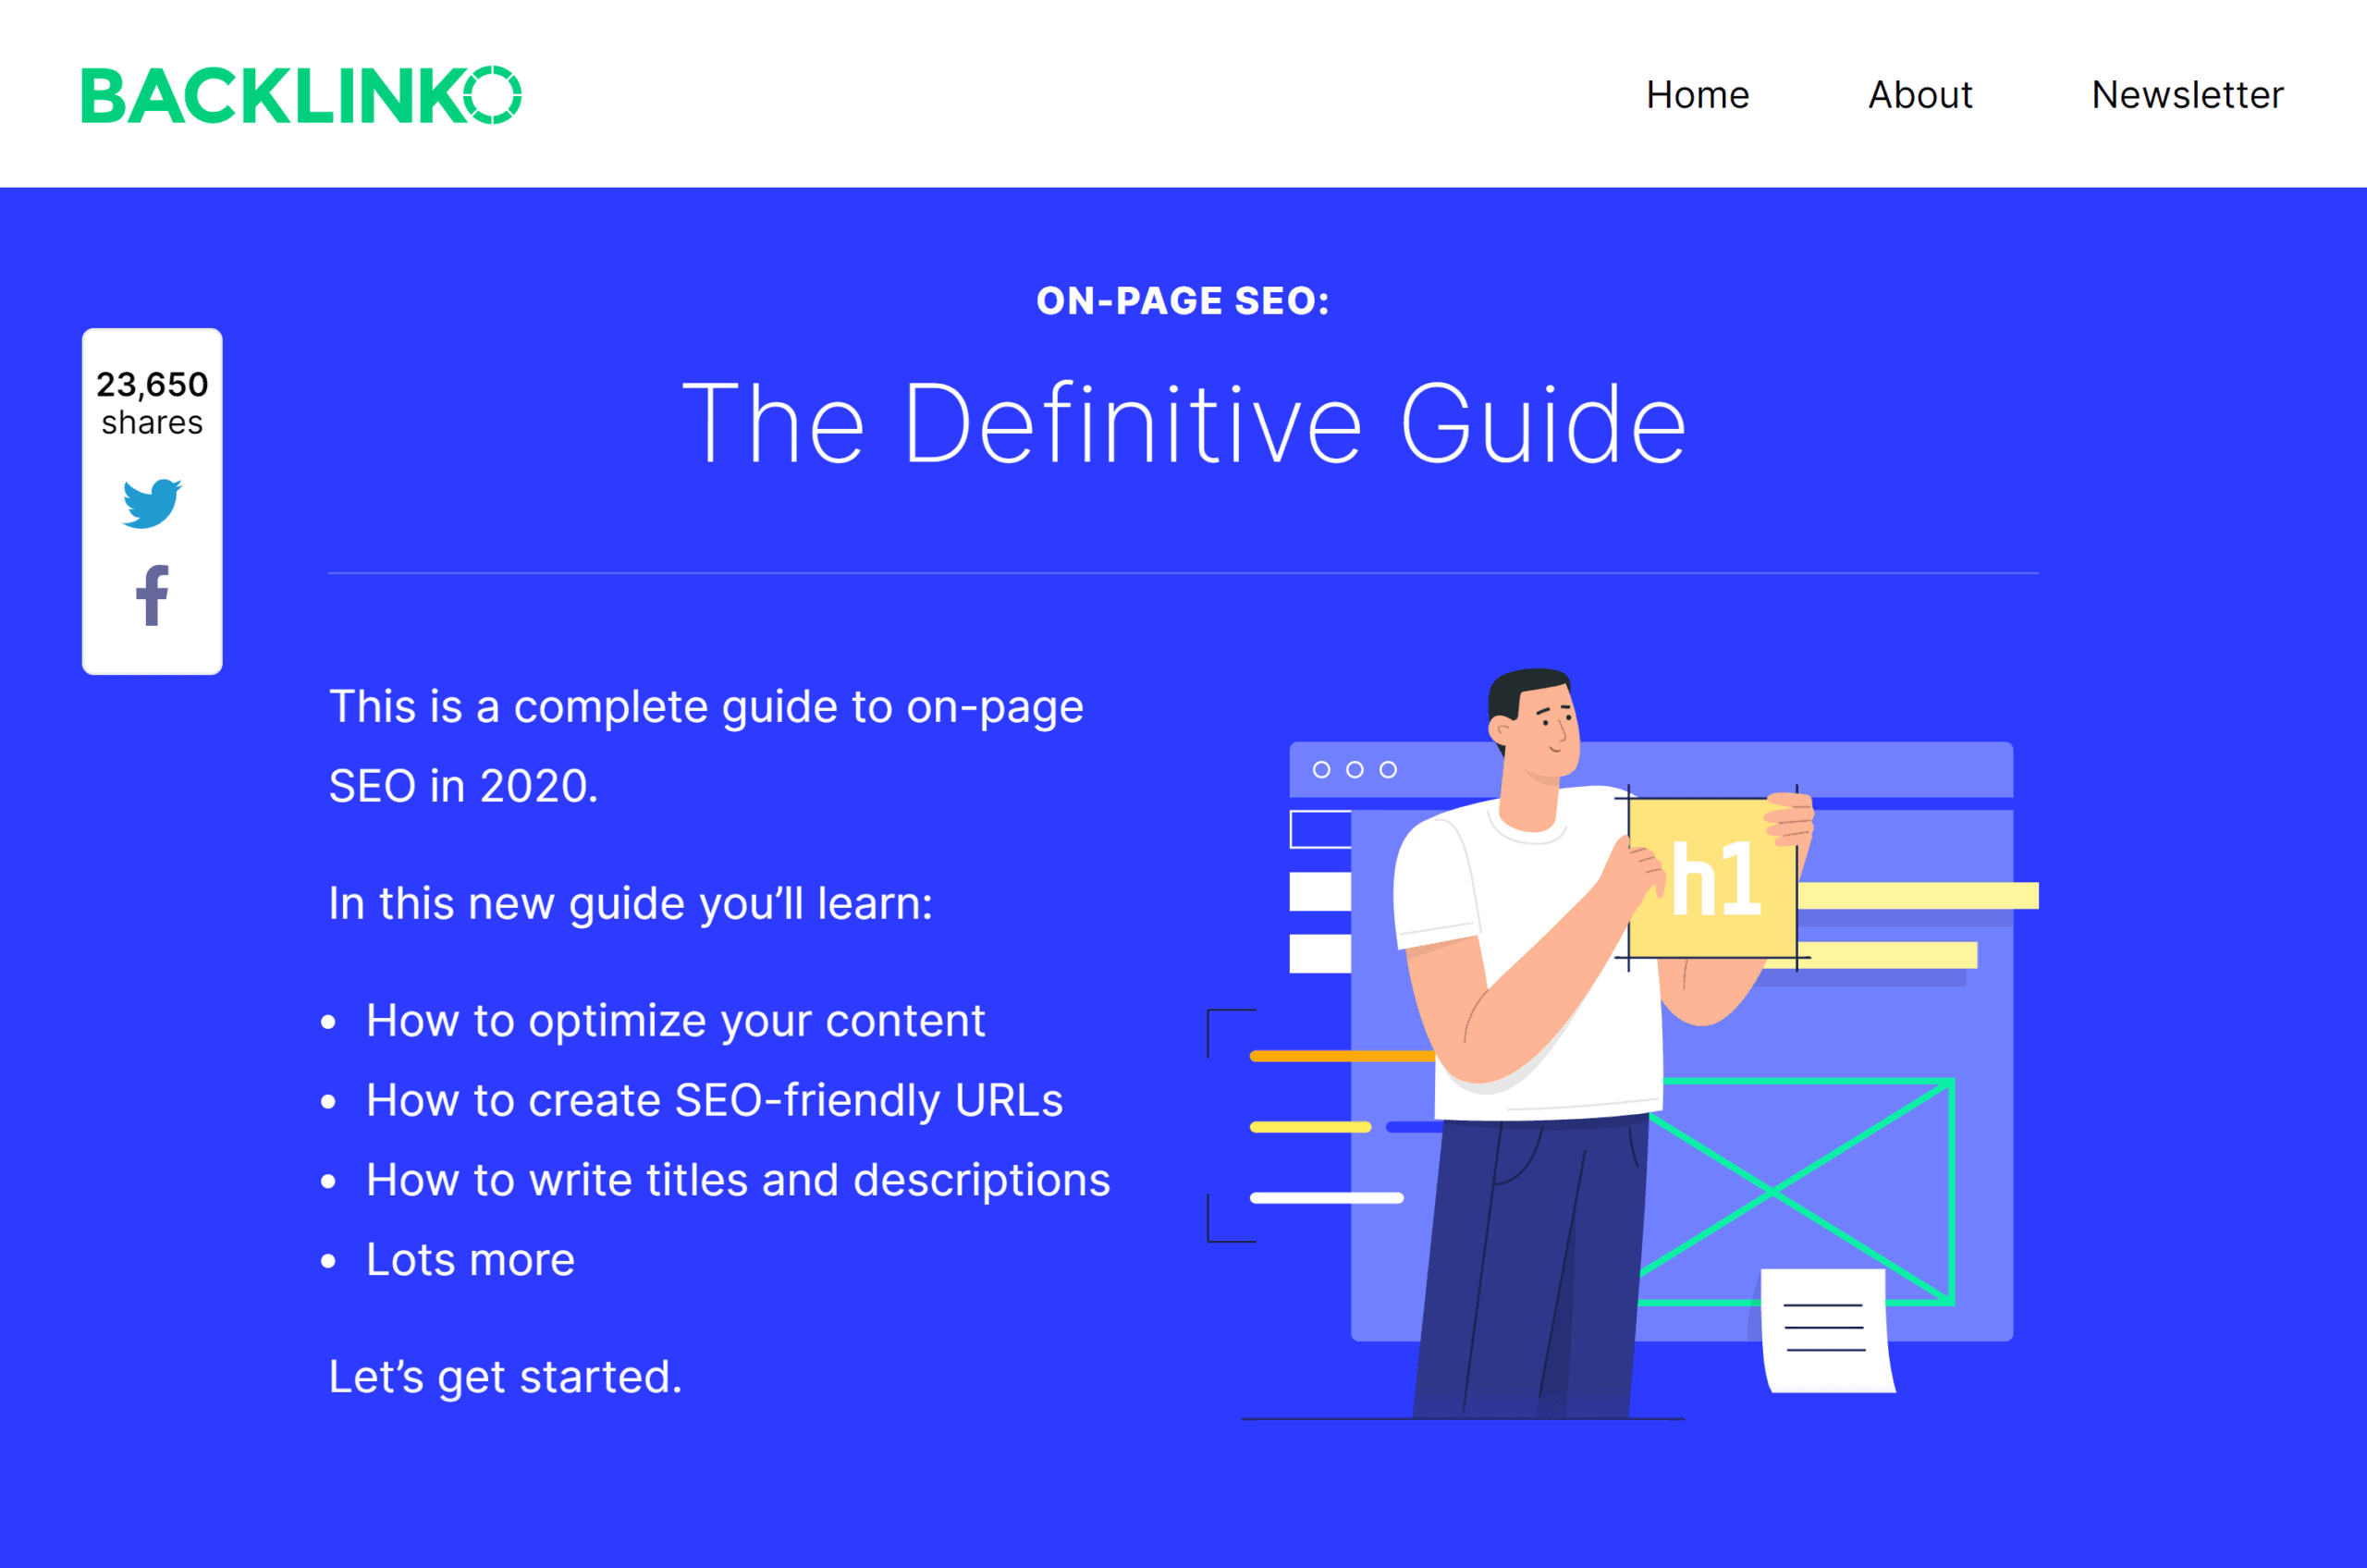 Backlinko – On-page SEO guide